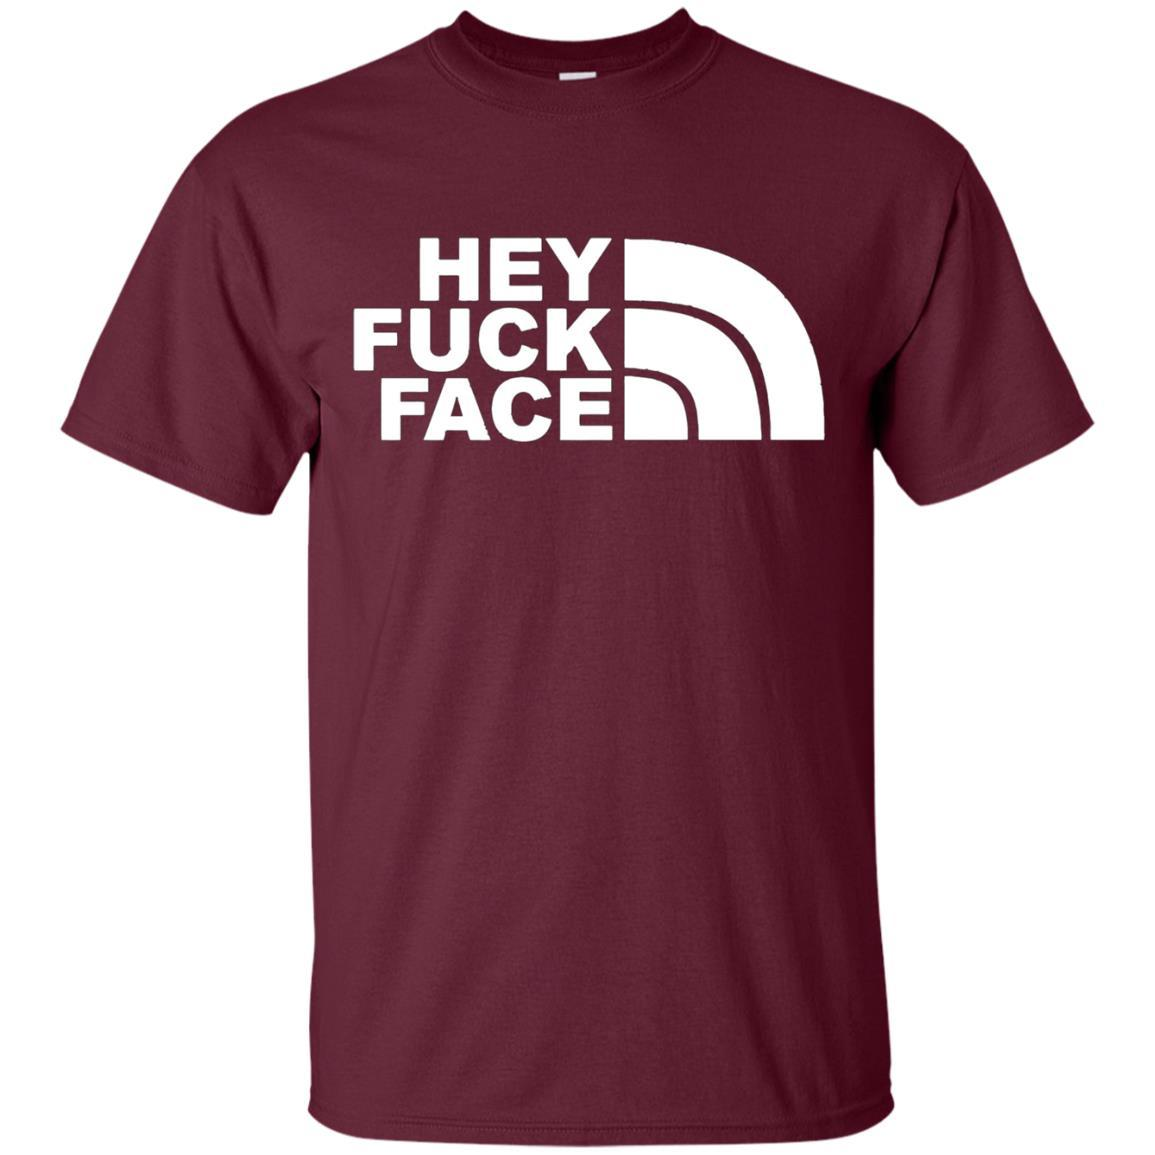 HEY FUCK FACE T-SHIRT Maroon / 5XL